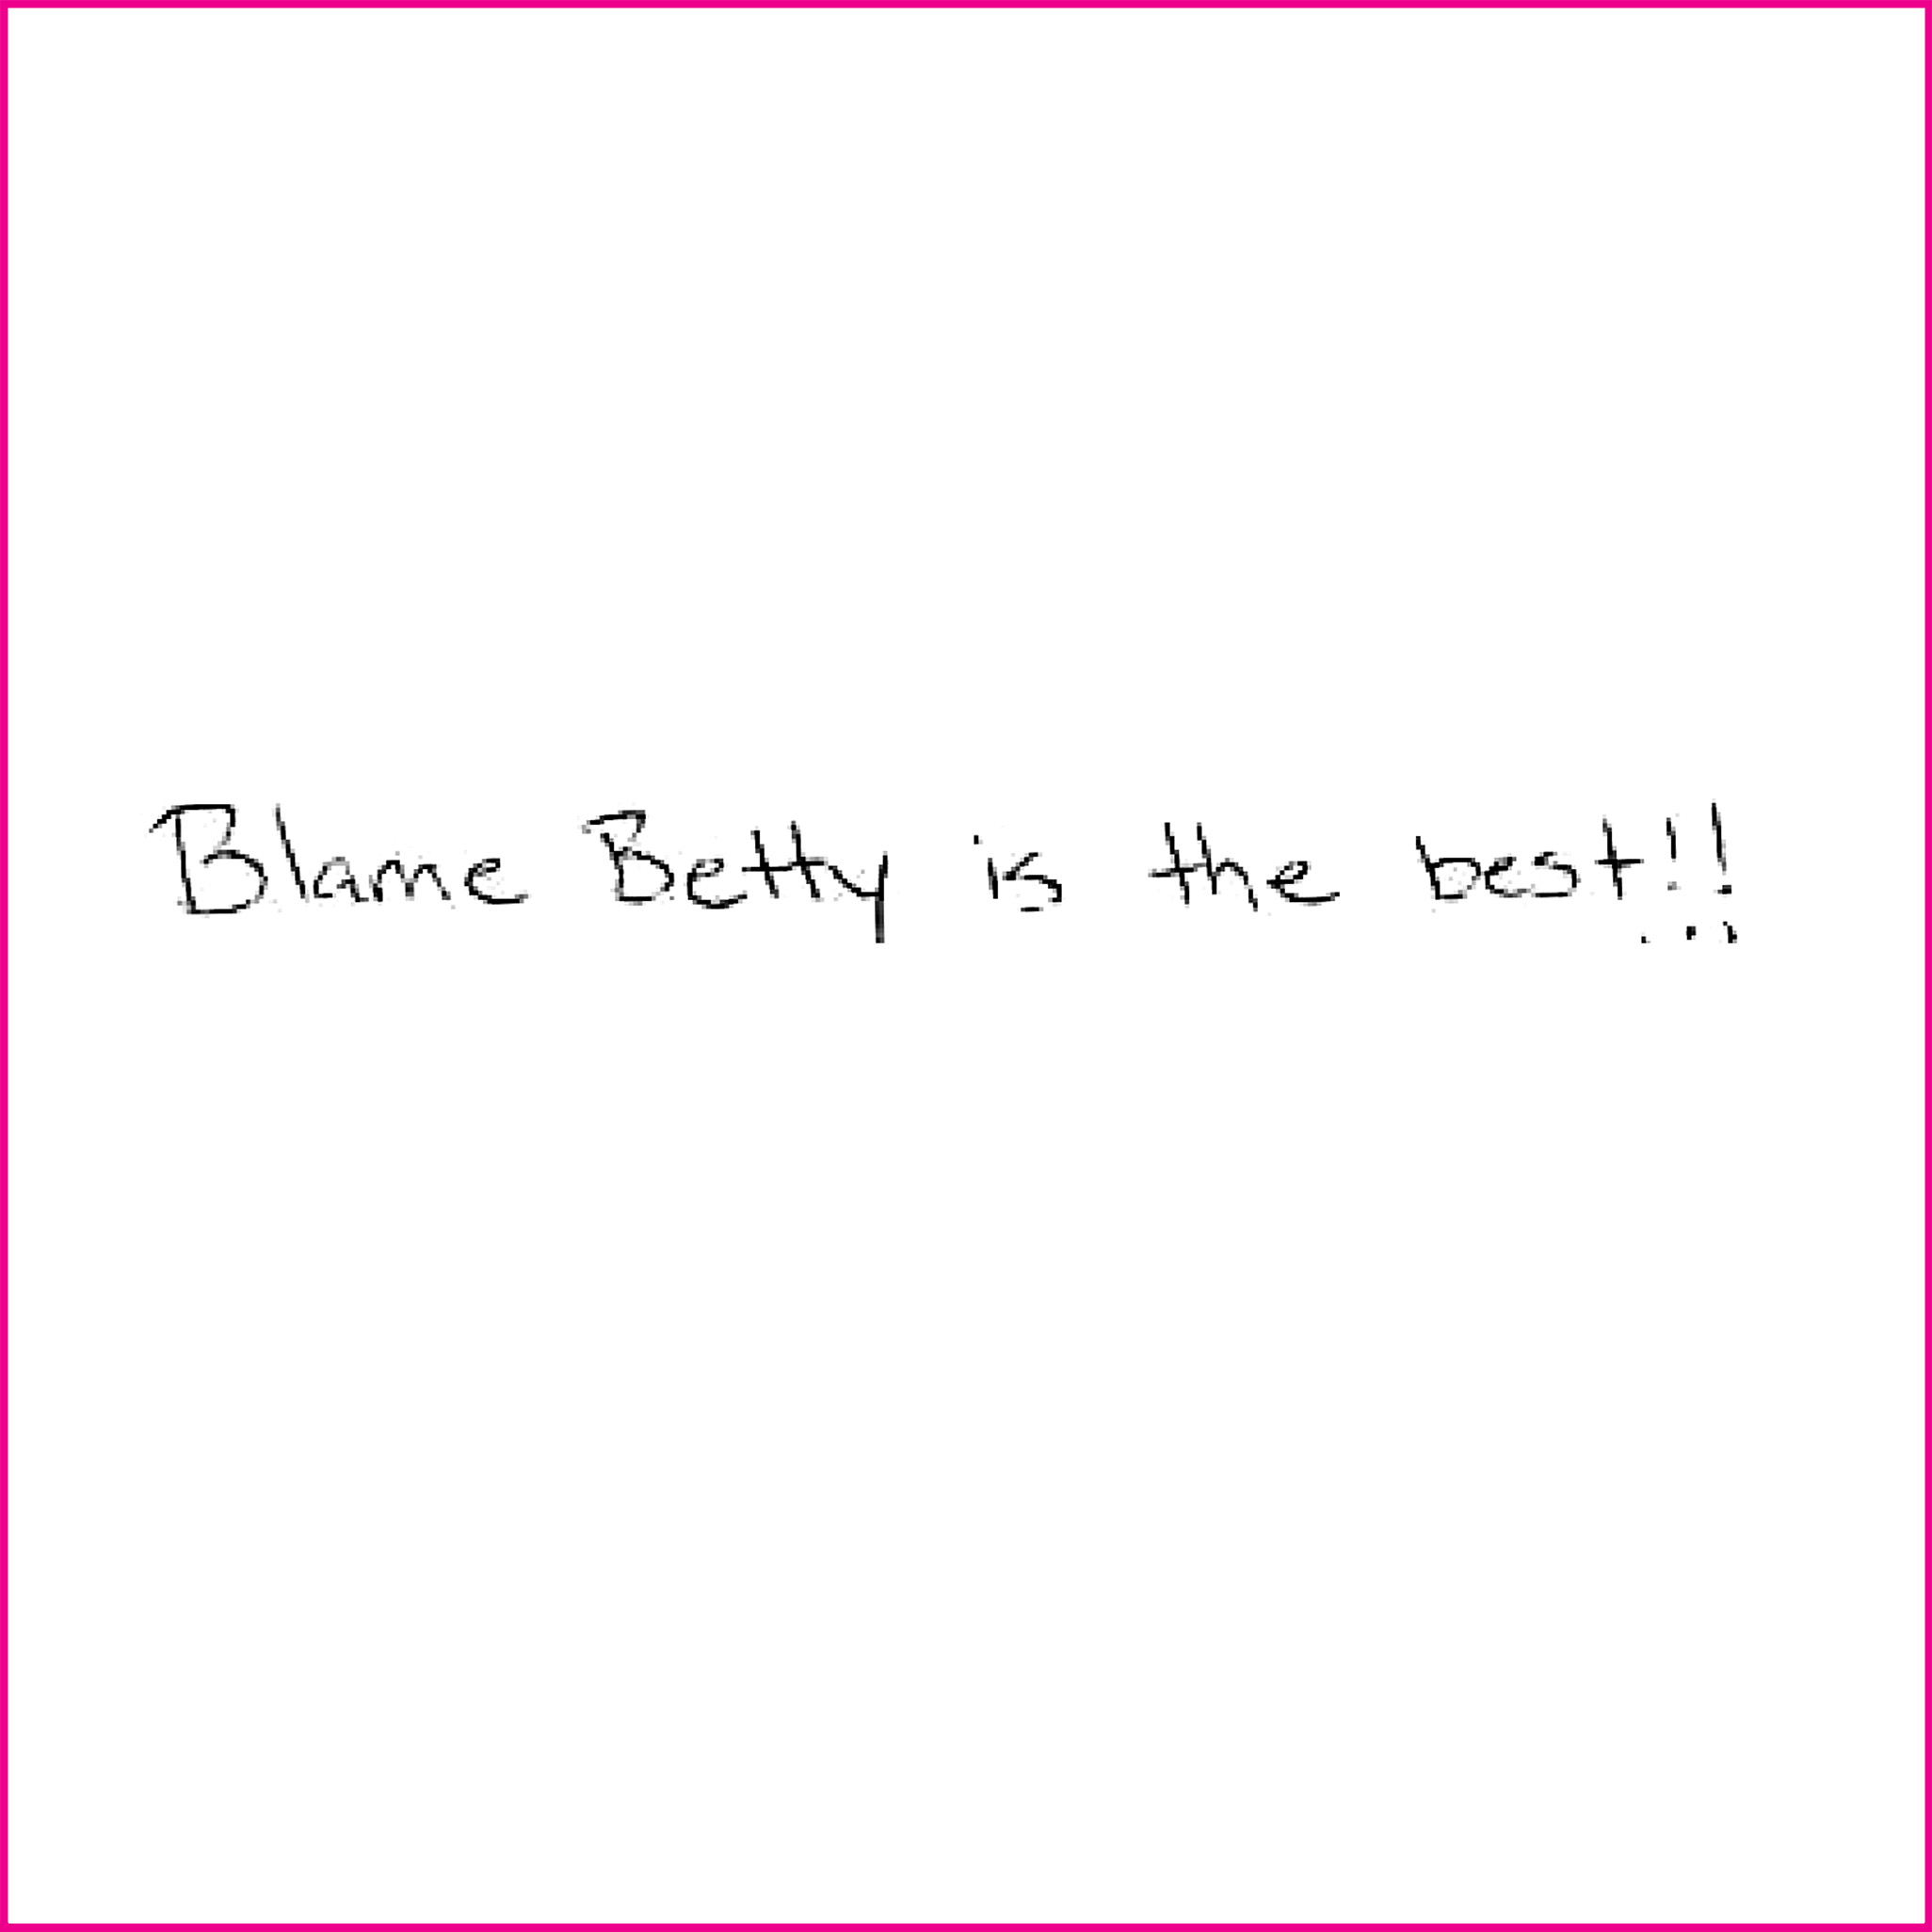 Blame Betty is the best!